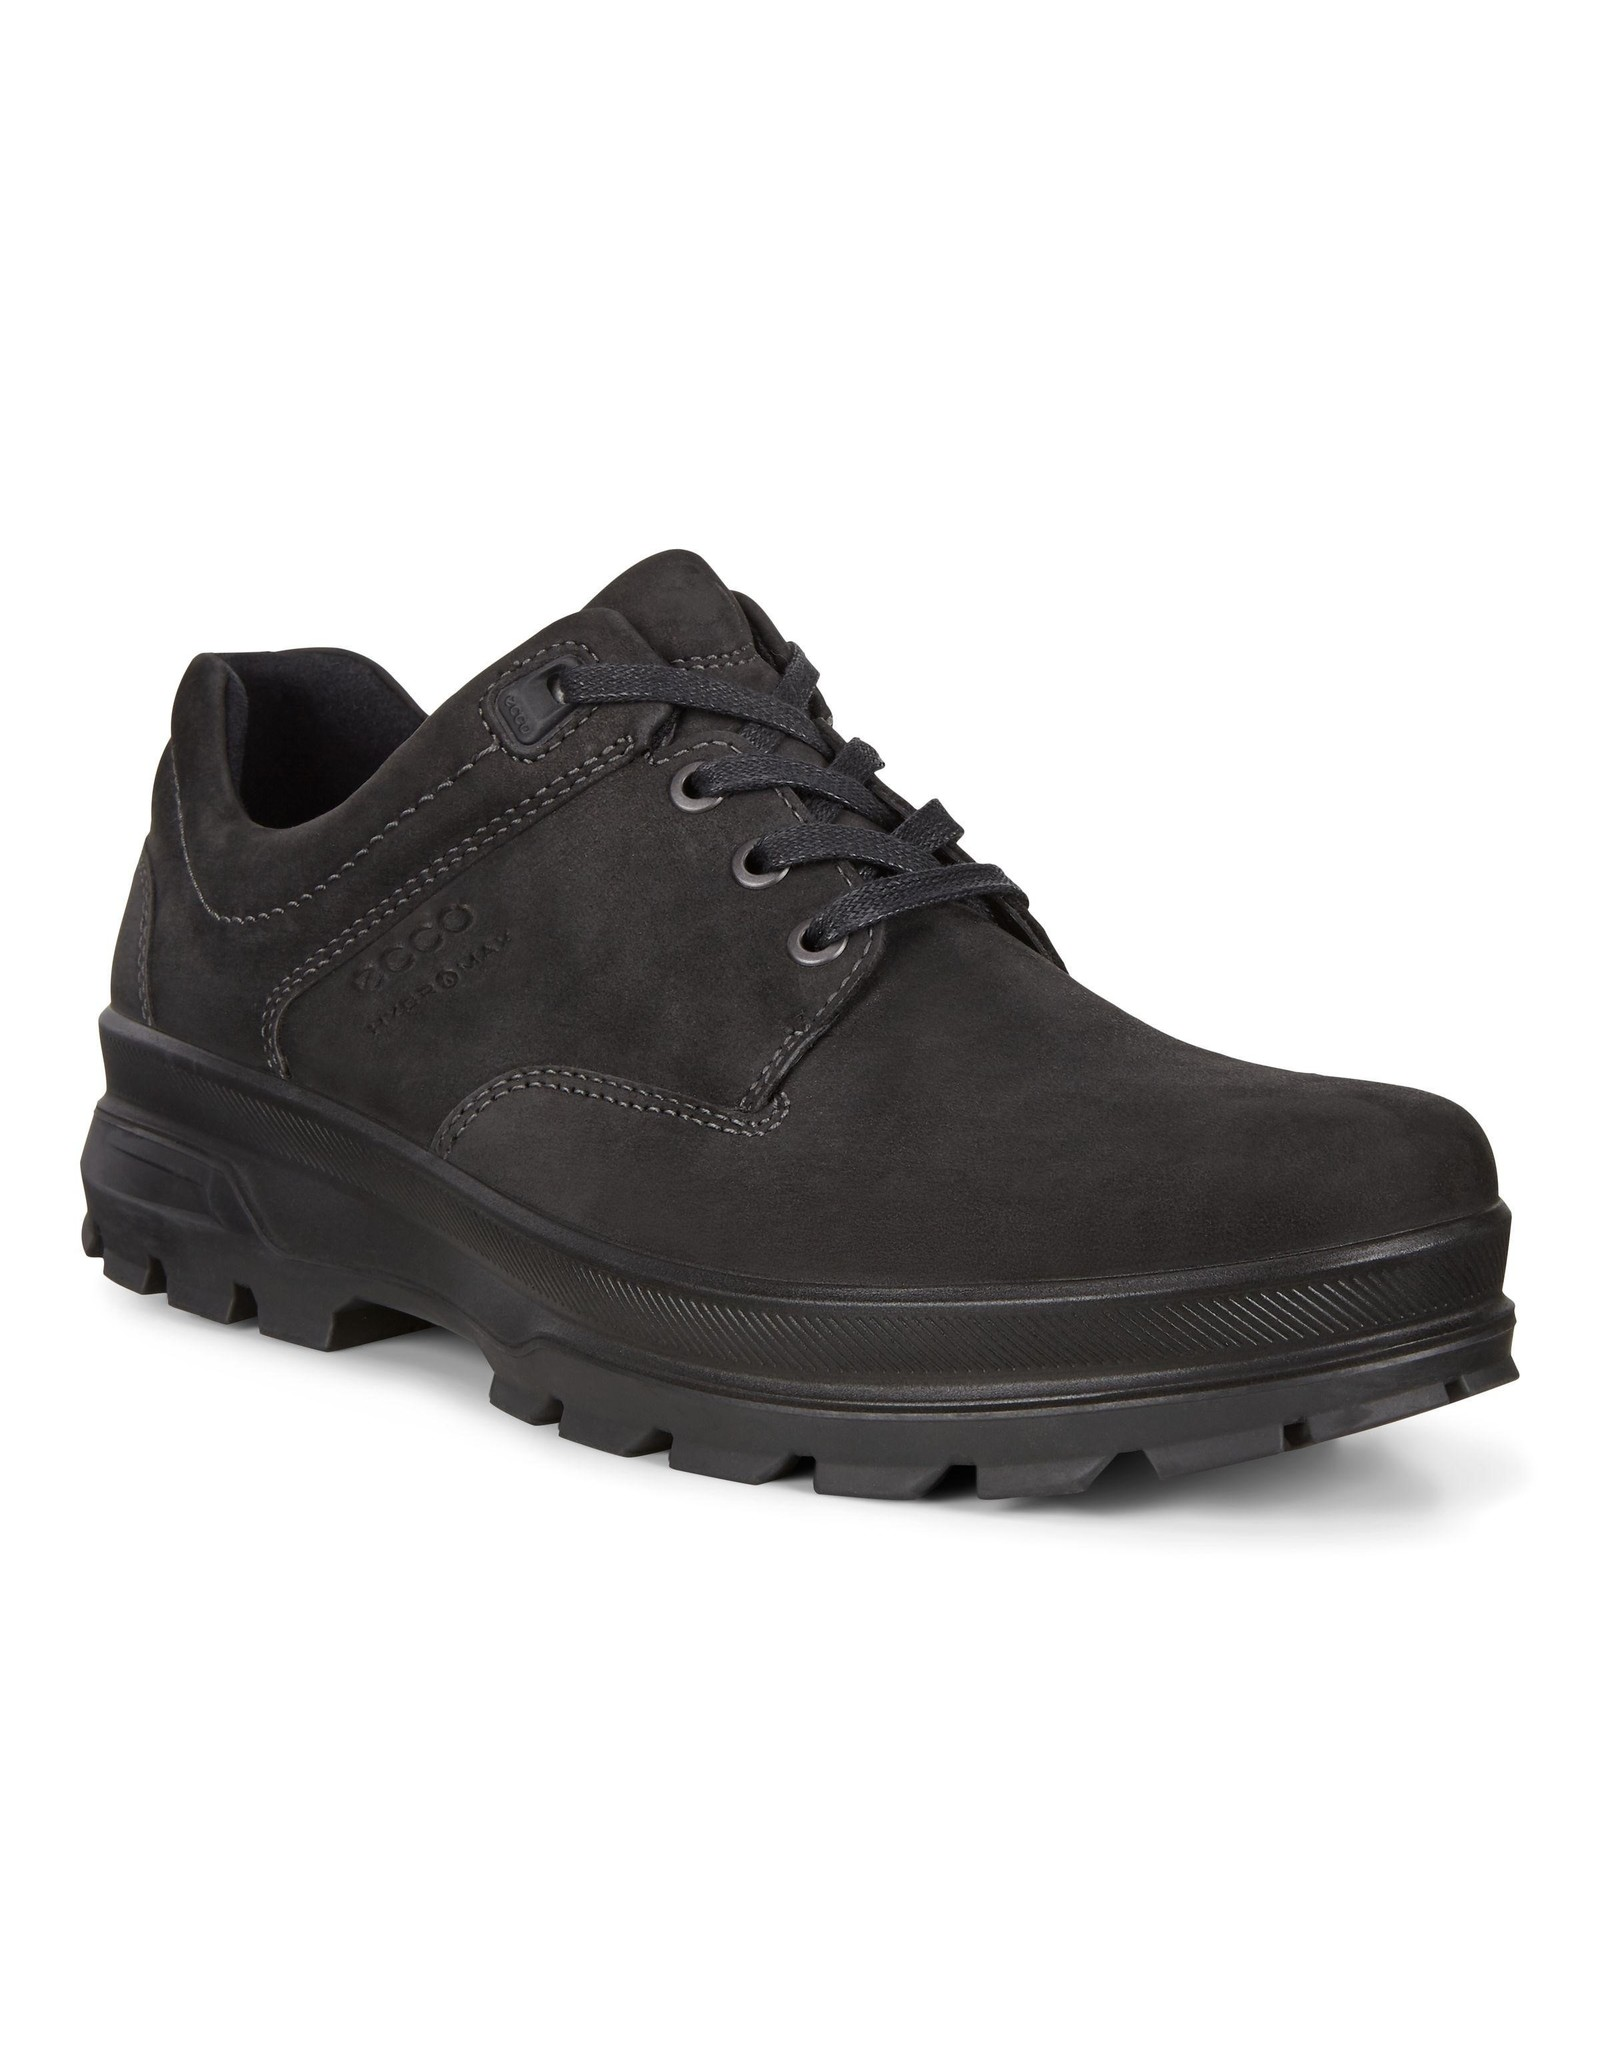 ECCO ECCO - M's - Rugged Track Low -